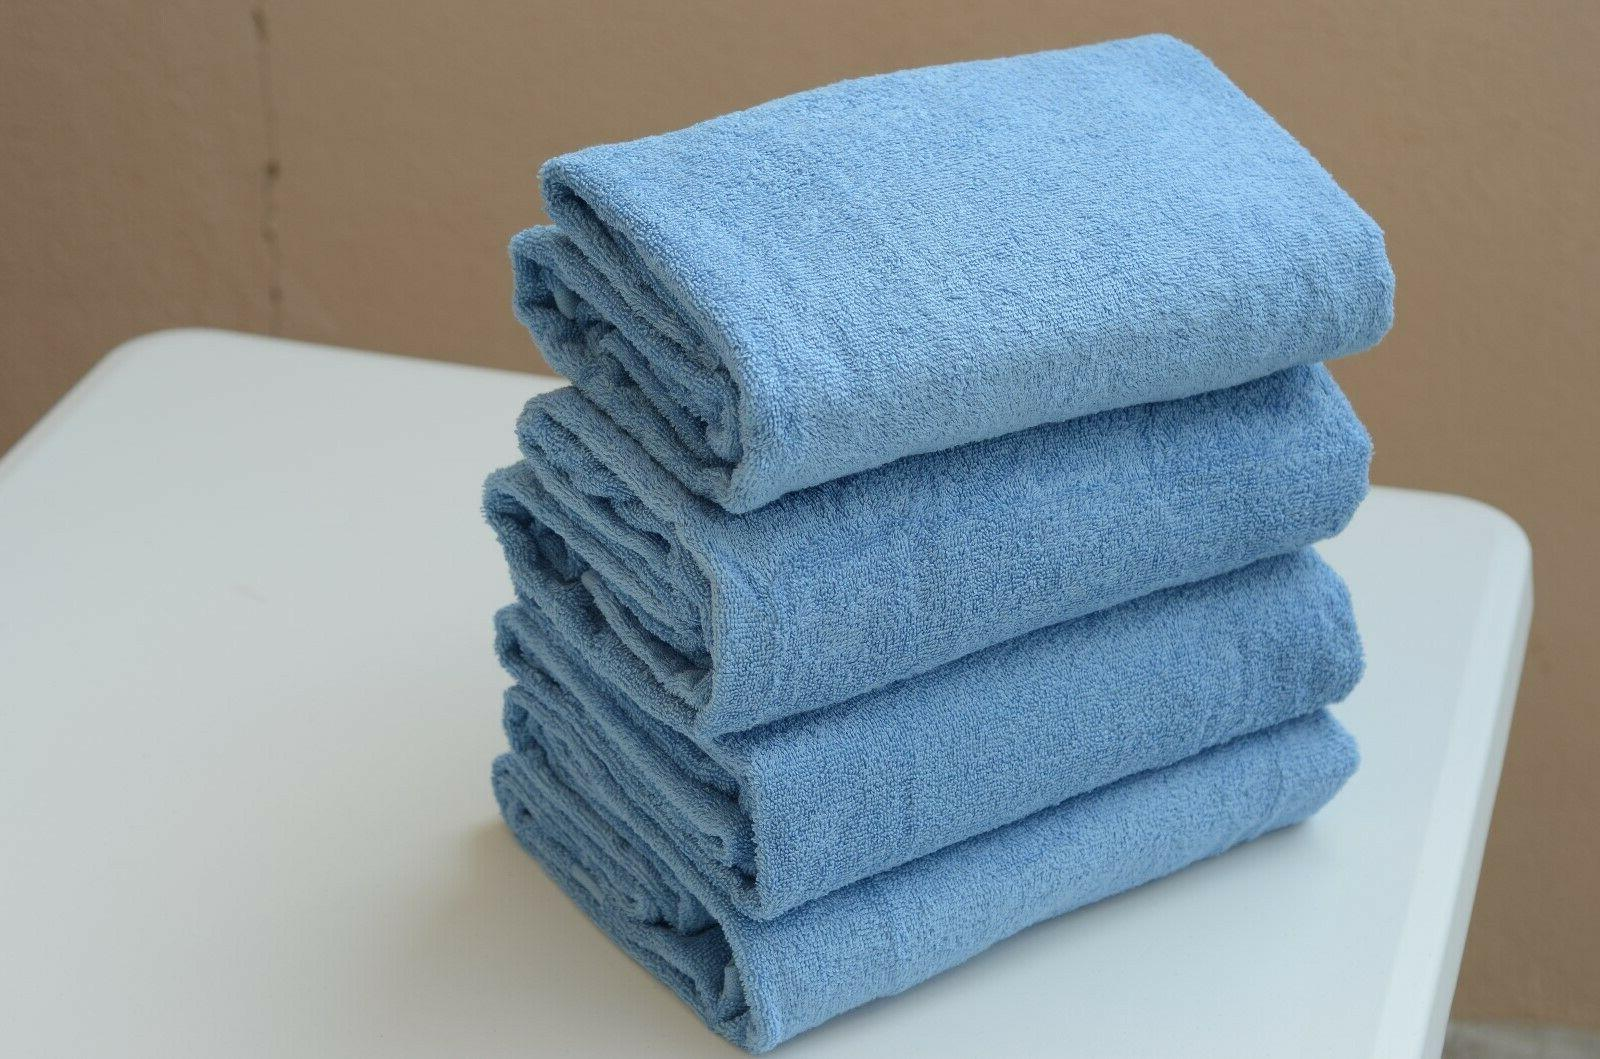 4-PACK COTTON TOWELS 30x60 in. HOTEL QUALITY!